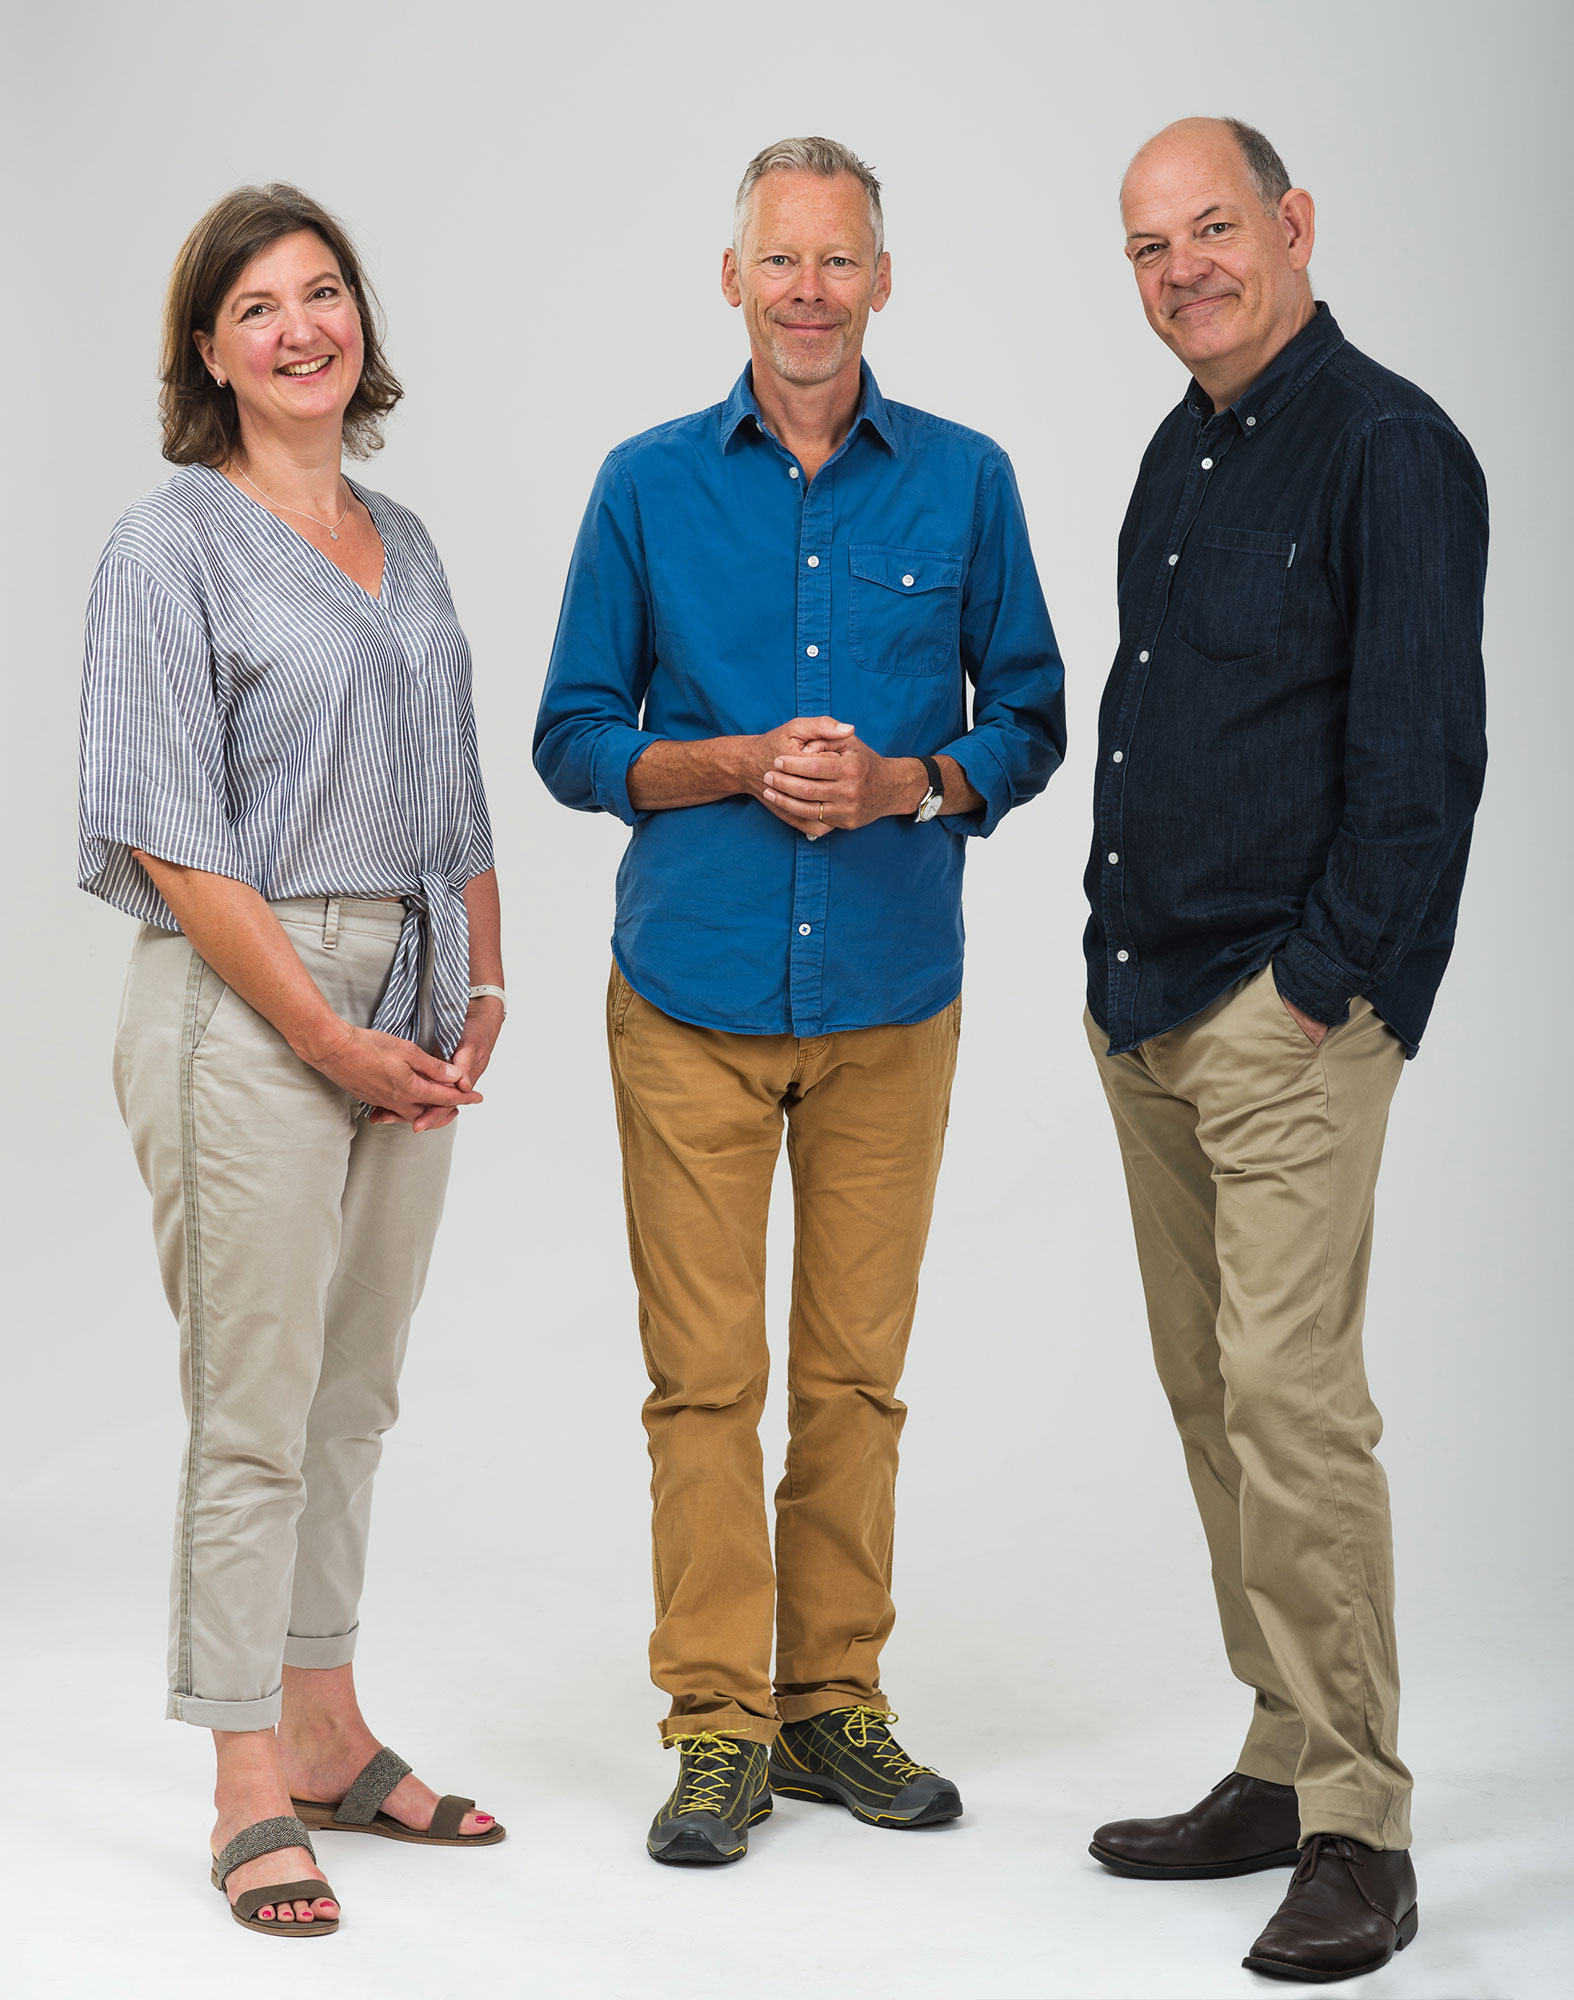 Directors Ruth Ingledow, Richard Hahlo & Geoff Church